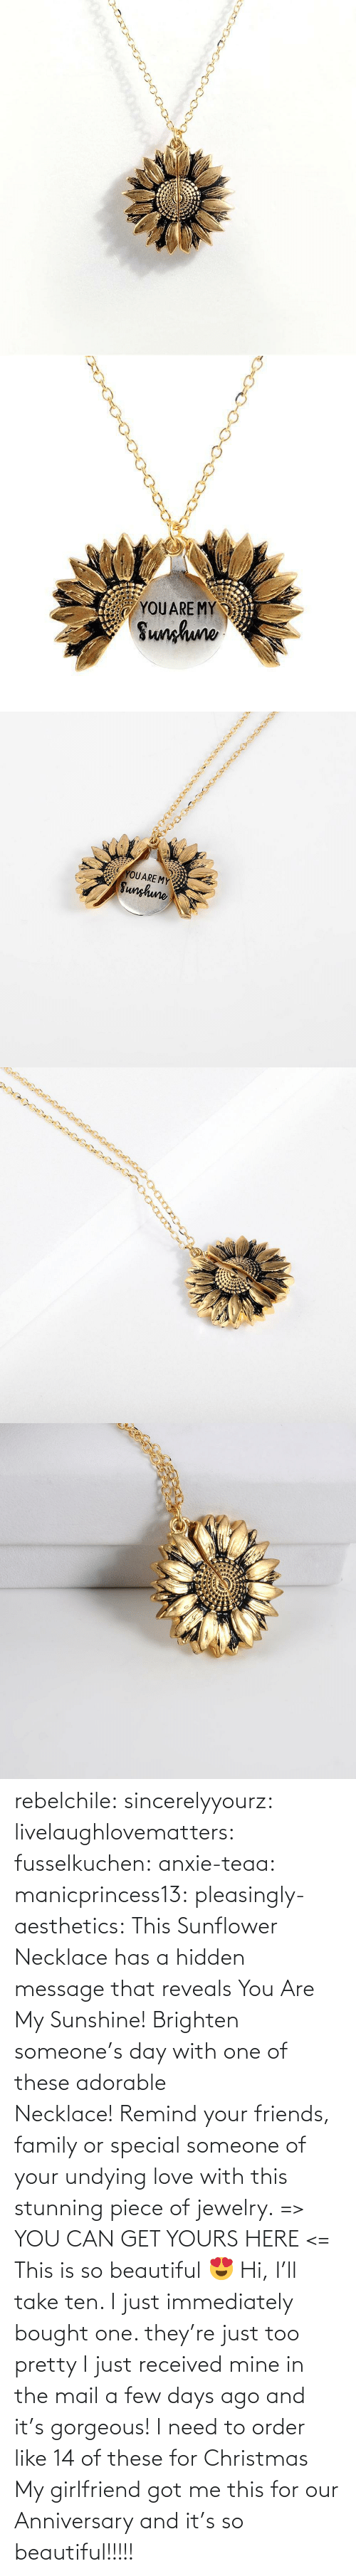 hidden: rebelchile:  sincerelyyourz:  livelaughlovematters:  fusselkuchen:  anxie-teaa:   manicprincess13:   pleasingly-aesthetics:  This Sunflower Necklace has a hidden message that reveals You Are My Sunshine! Brighten someone's day with one of these adorable Necklace! Remind your friends, family or special someone of your undying love with this stunning piece of jewelry. => YOU CAN GET YOURS HERE <=   This is so beautiful 😍    Hi, I'll take ten.    I just immediately bought one. they're just too pretty   I just received mine in the mail a few days ago and it's gorgeous!   I need to order like 14 of these for Christmas    My girlfriend got me this for our Anniversary and it's so beautiful!!!!!